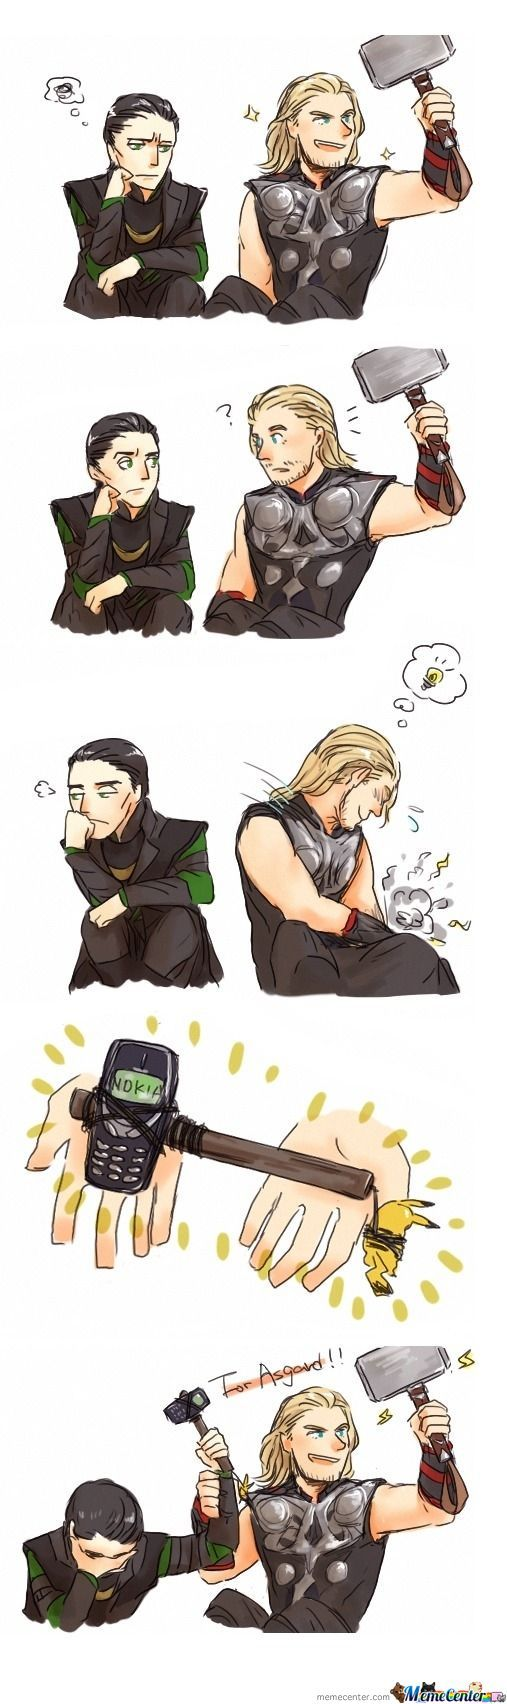 Lol, For Asgard!